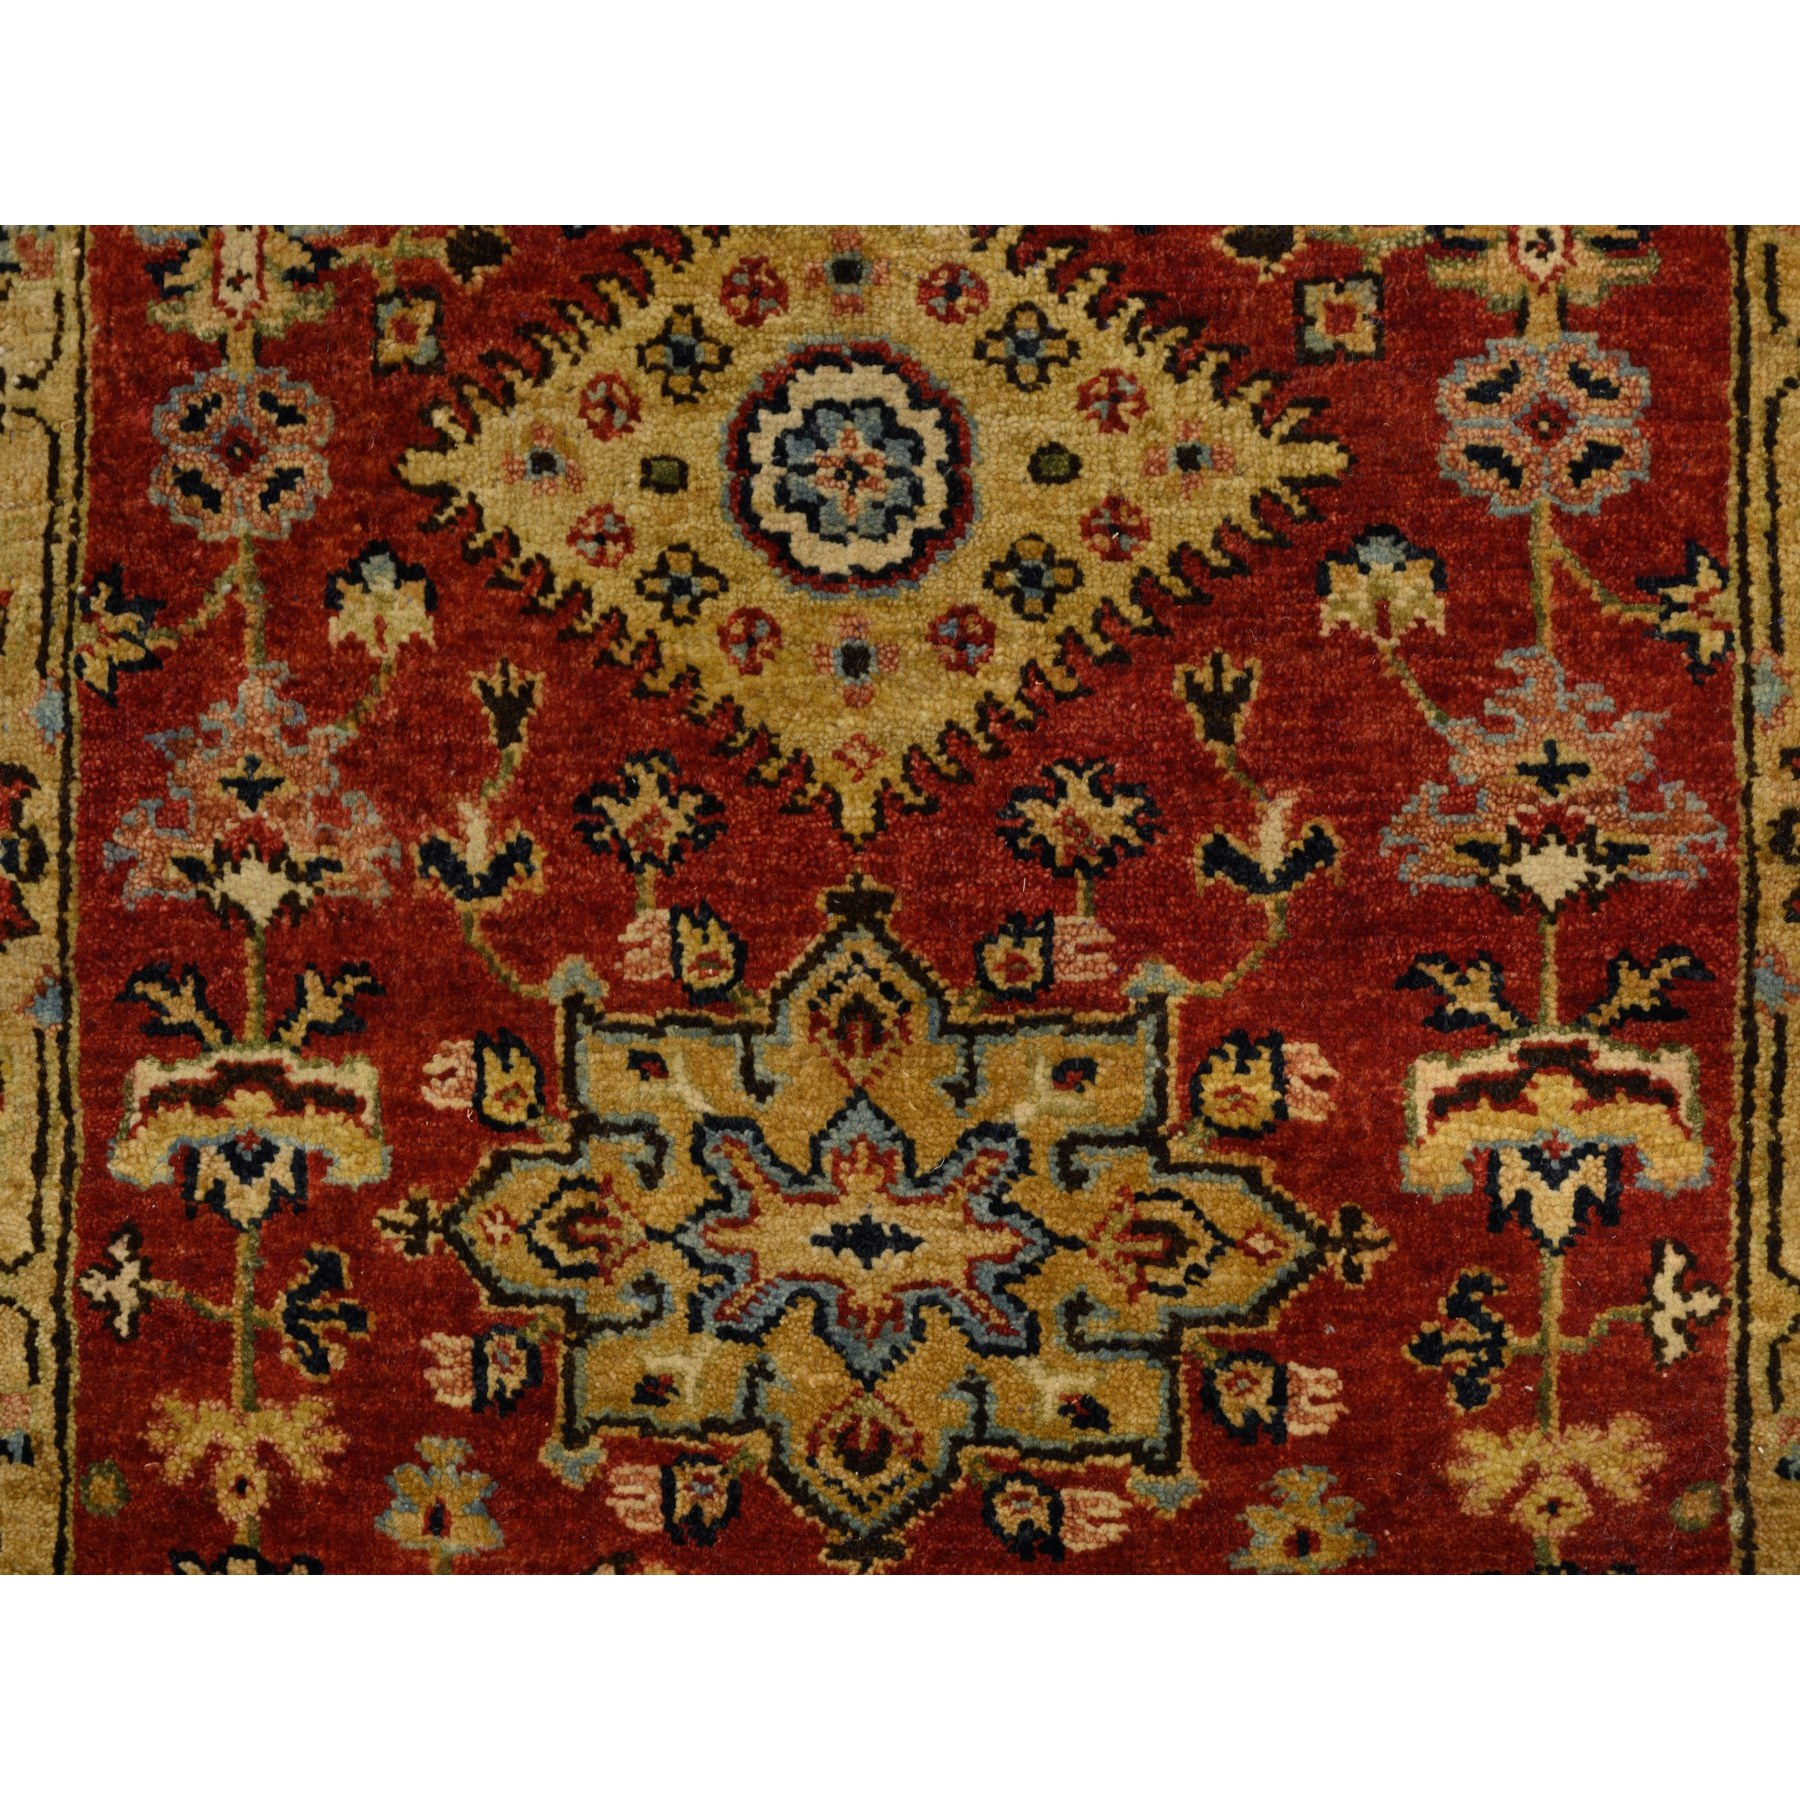 "2'8""x13'9"" Red Karajeh Design Pure Wool Hand Knotted Oriental Runner Rug"